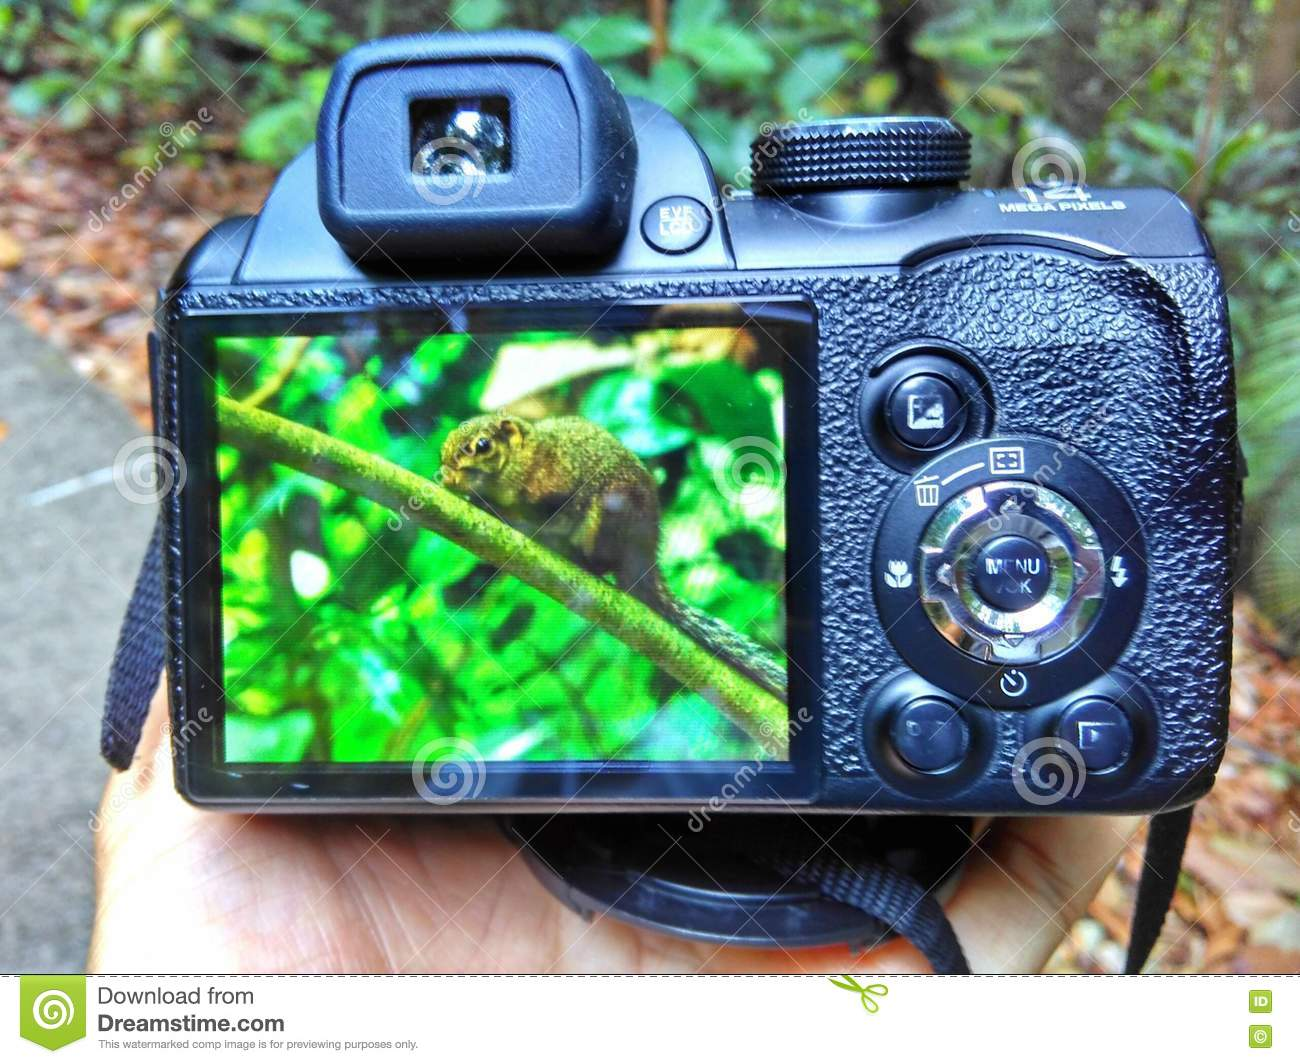 Best Compact Digital Camera For Nature Photography